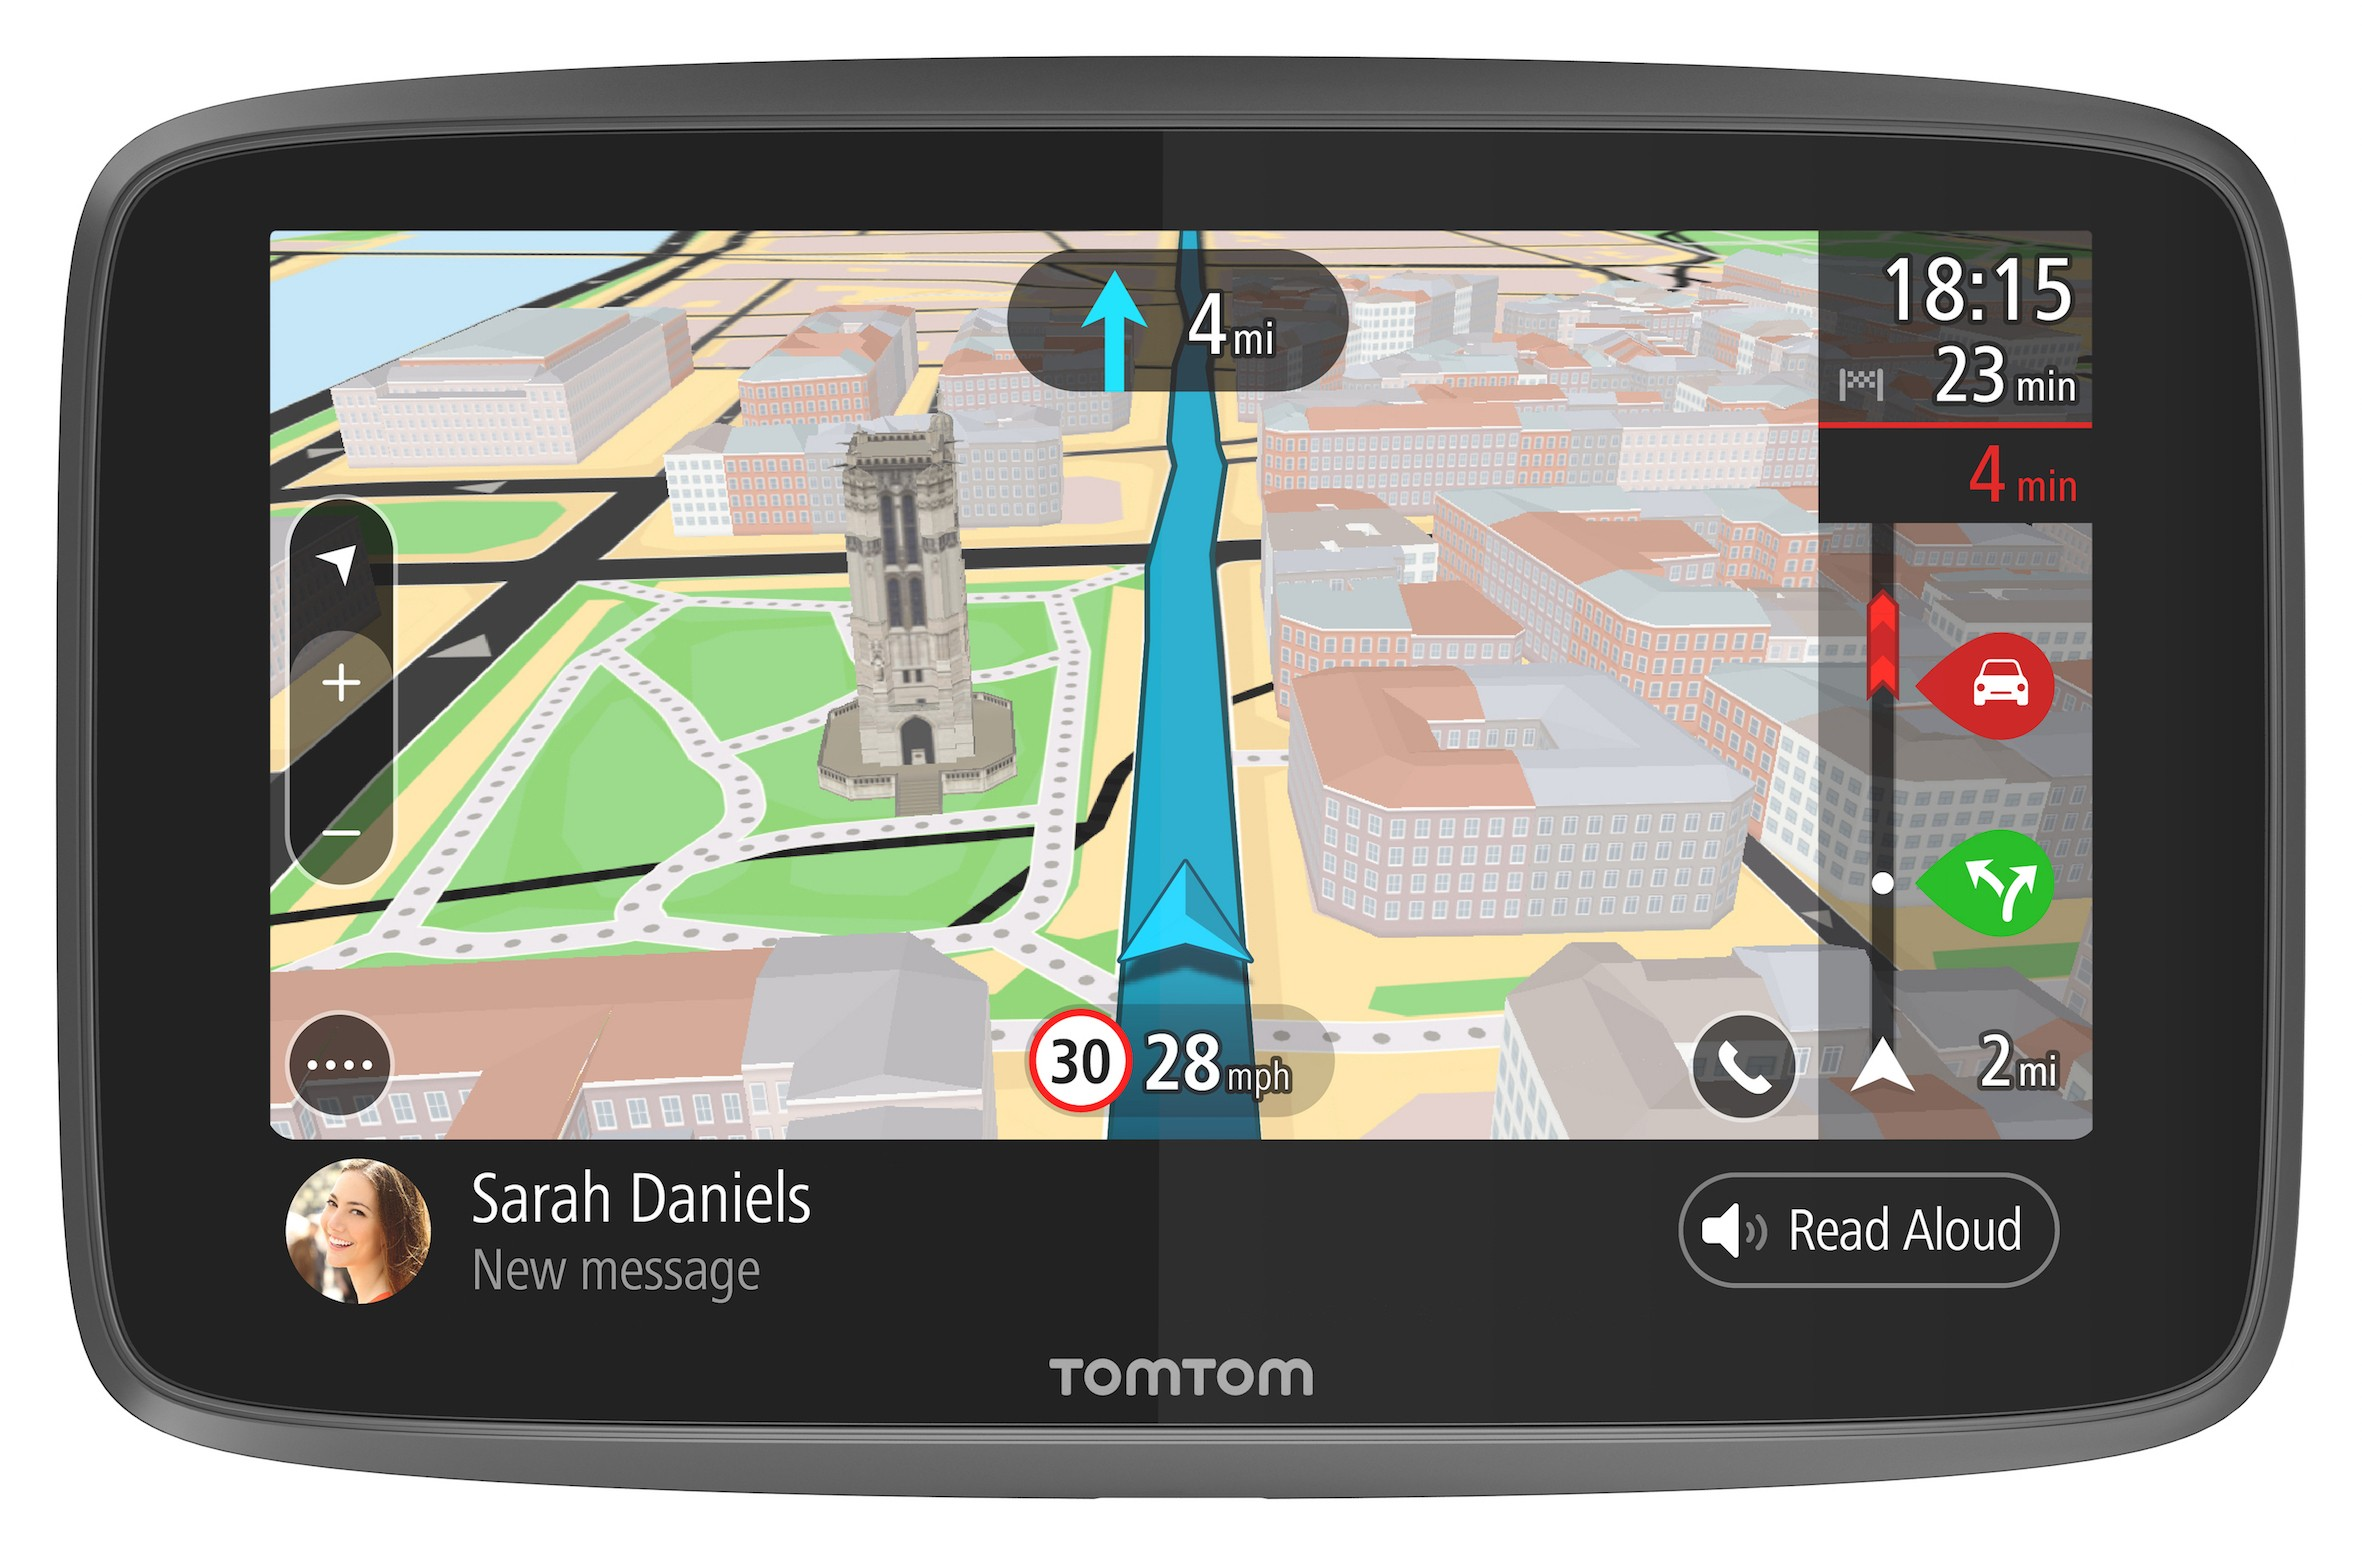 Meilleur Gps Smartphone : tomtom go satellite navigation range adds wi fi updates more features autoevolution ~ Maxctalentgroup.com Avis de Voitures